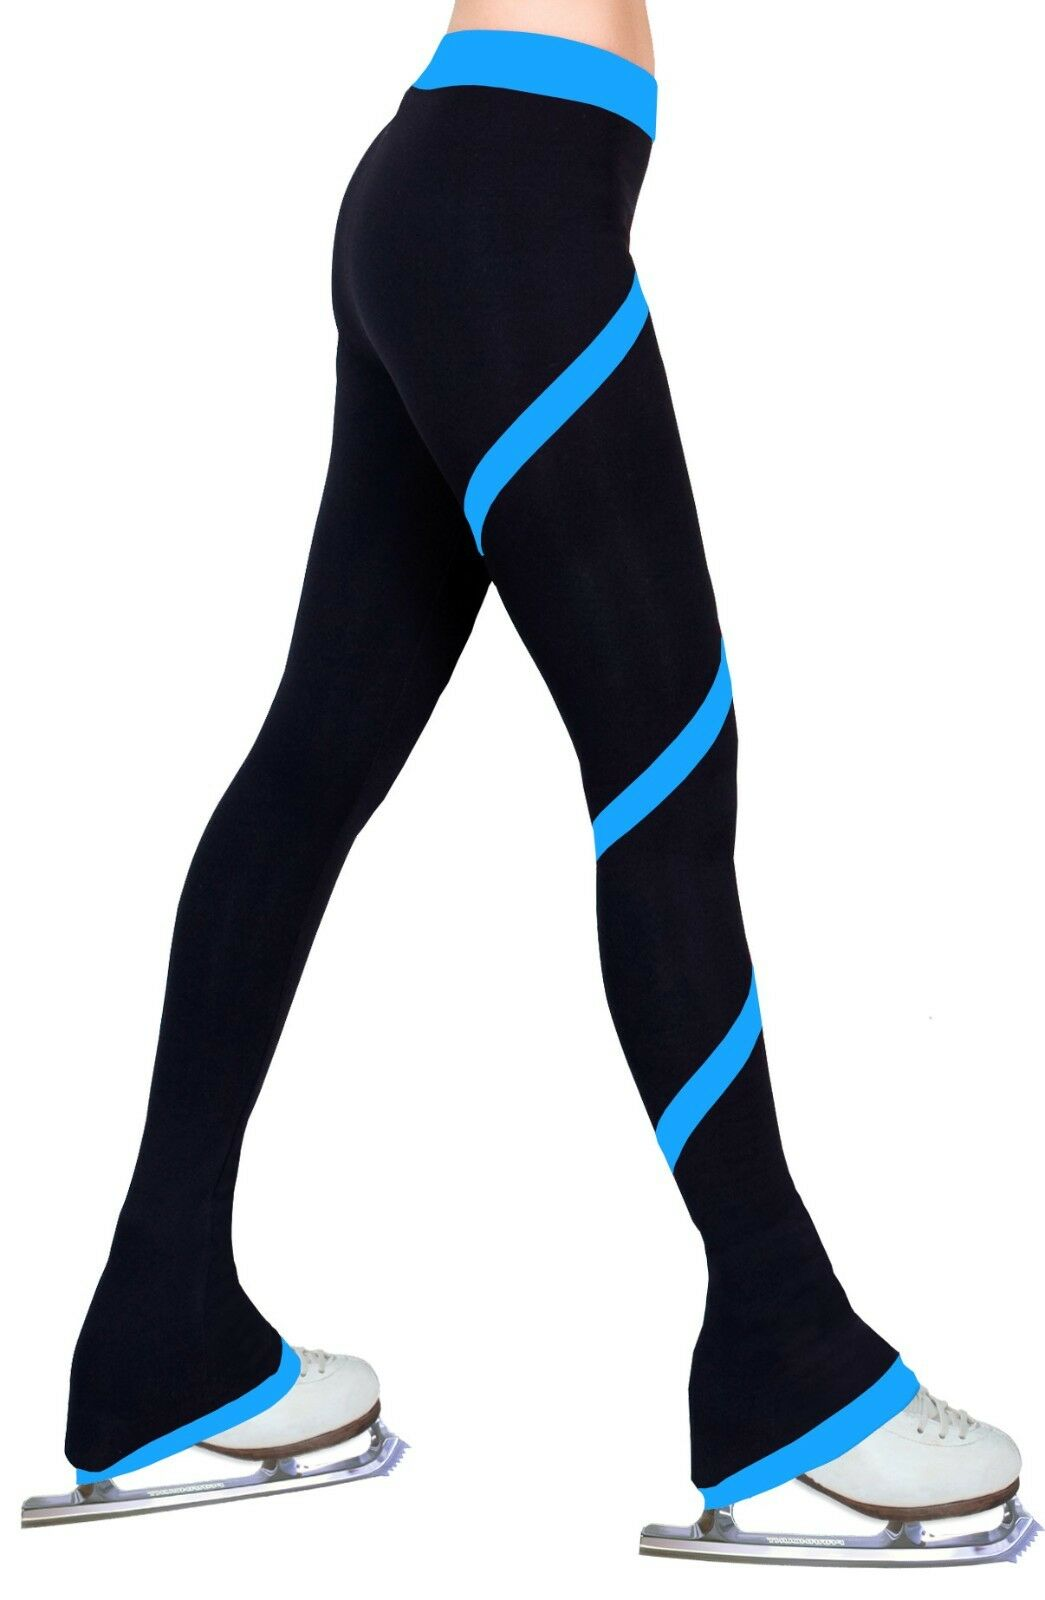 Ice Figure Skating Practice Polar Fleece Spiral Trousers Pants - Deep Sky bluee